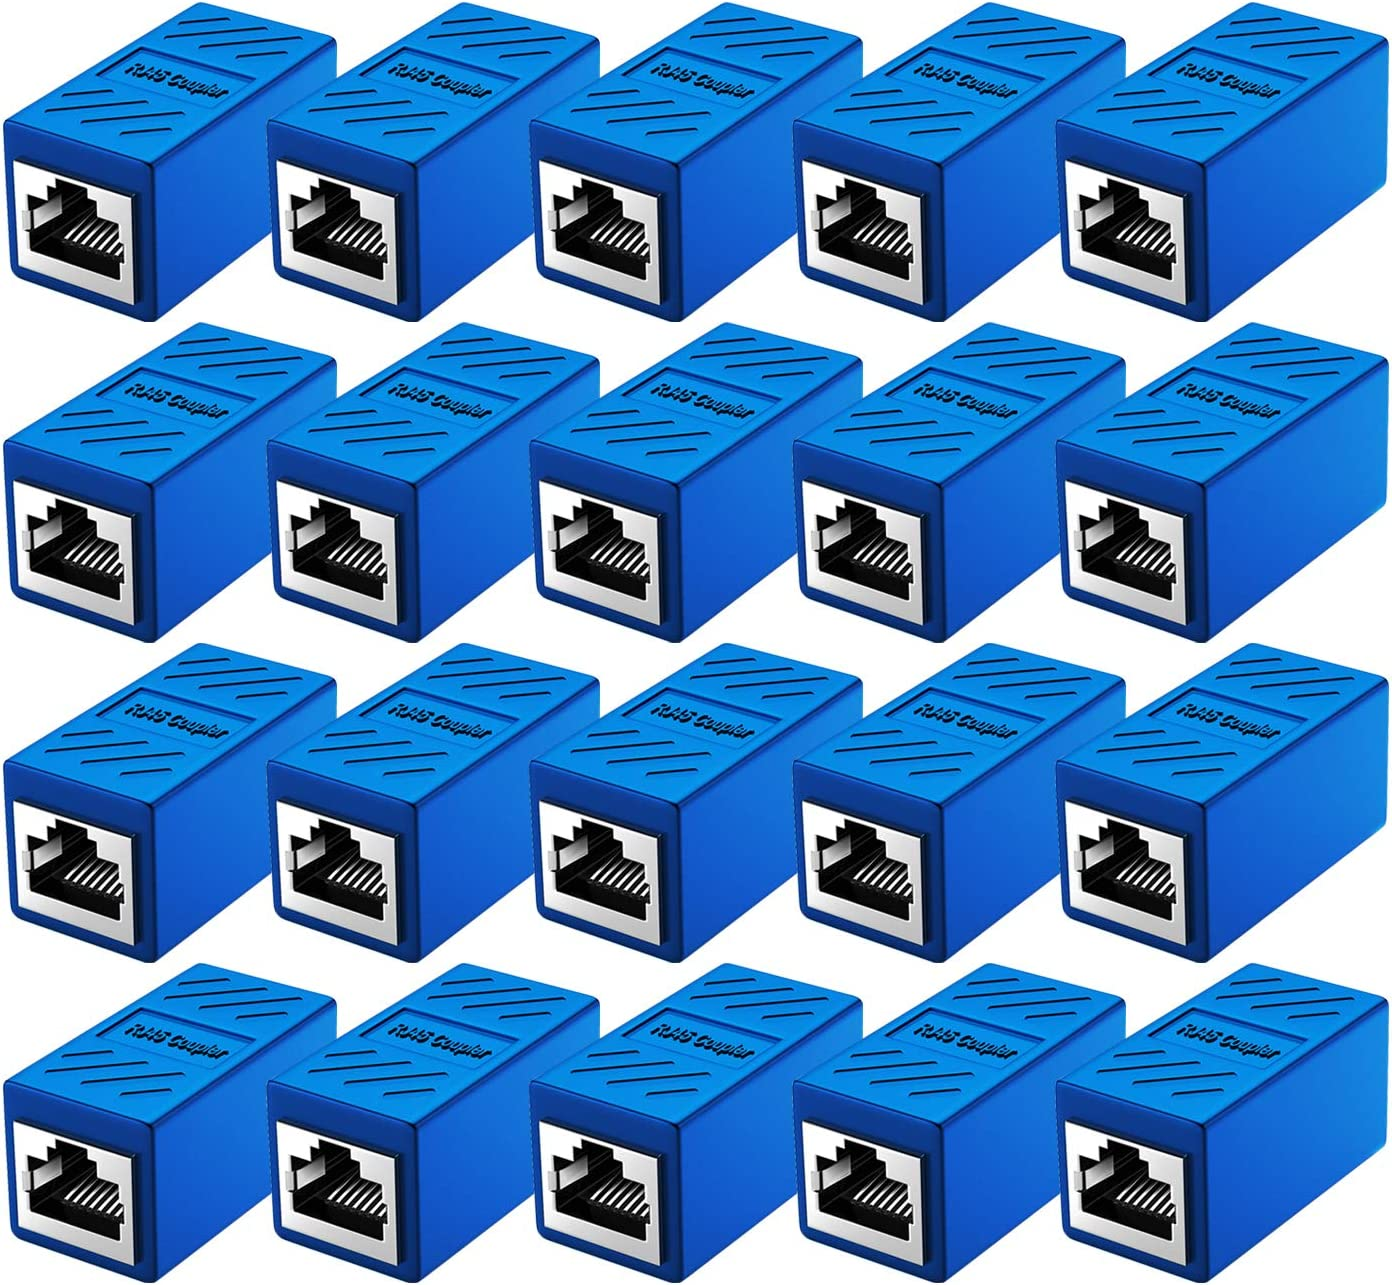 RJ45 Coupler Cat7 Cat6 Cat5e Ethernet Cable Extender Adapter LAN Connector in Line Coupler Female to Female Blue 5 Pack